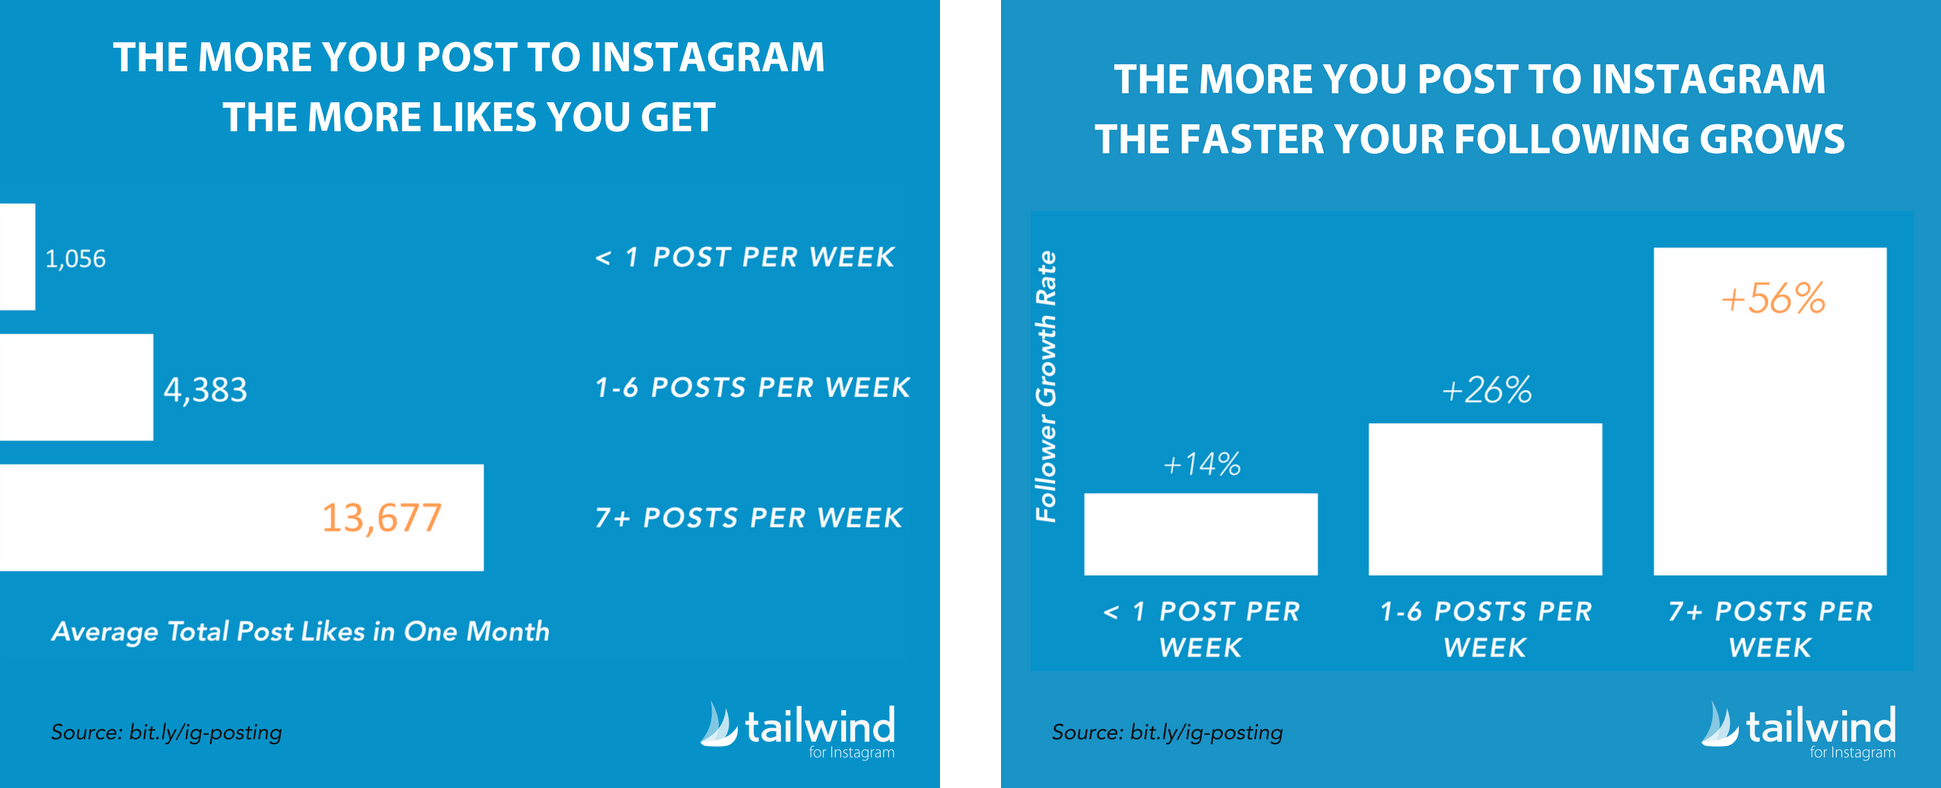 Tailwind Instagram study on posting frequency